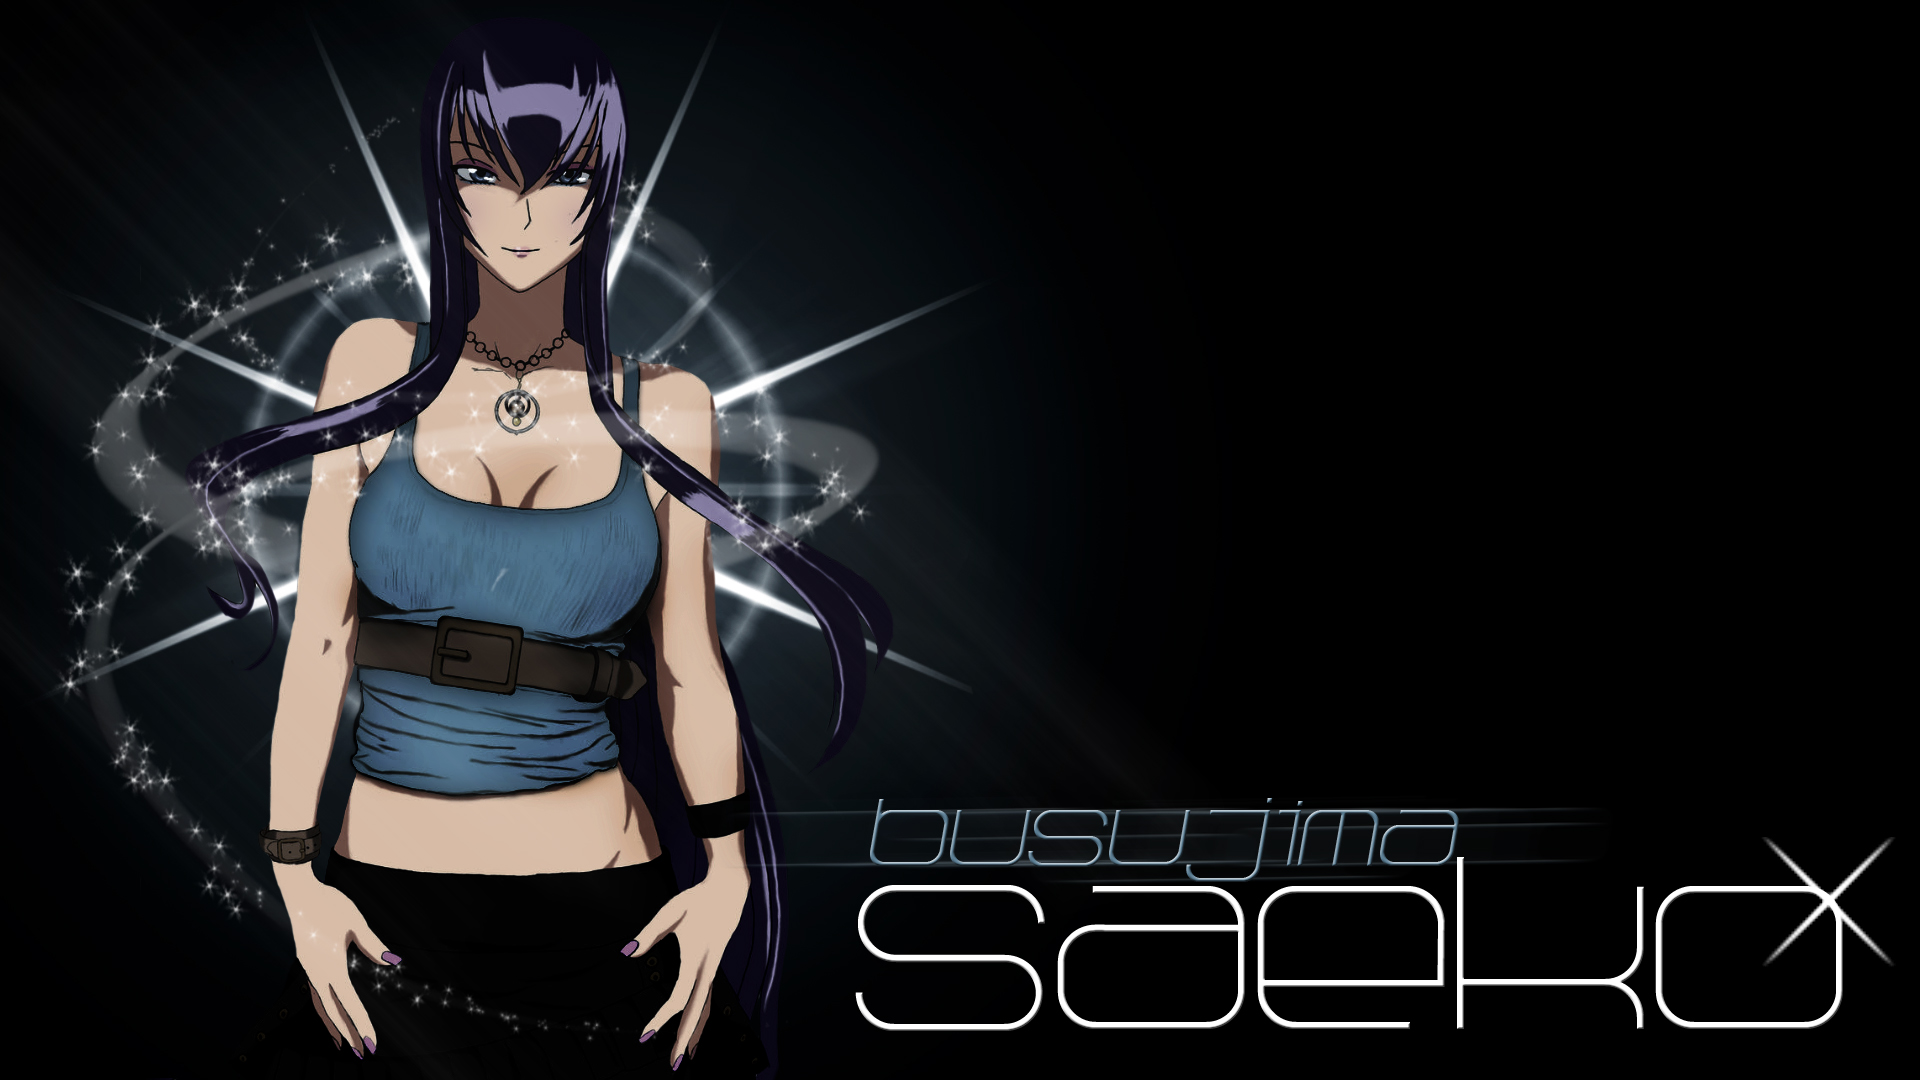 Saeko Busujima Sweet H O T D Wallpaper By Ur 31 On Deviantart